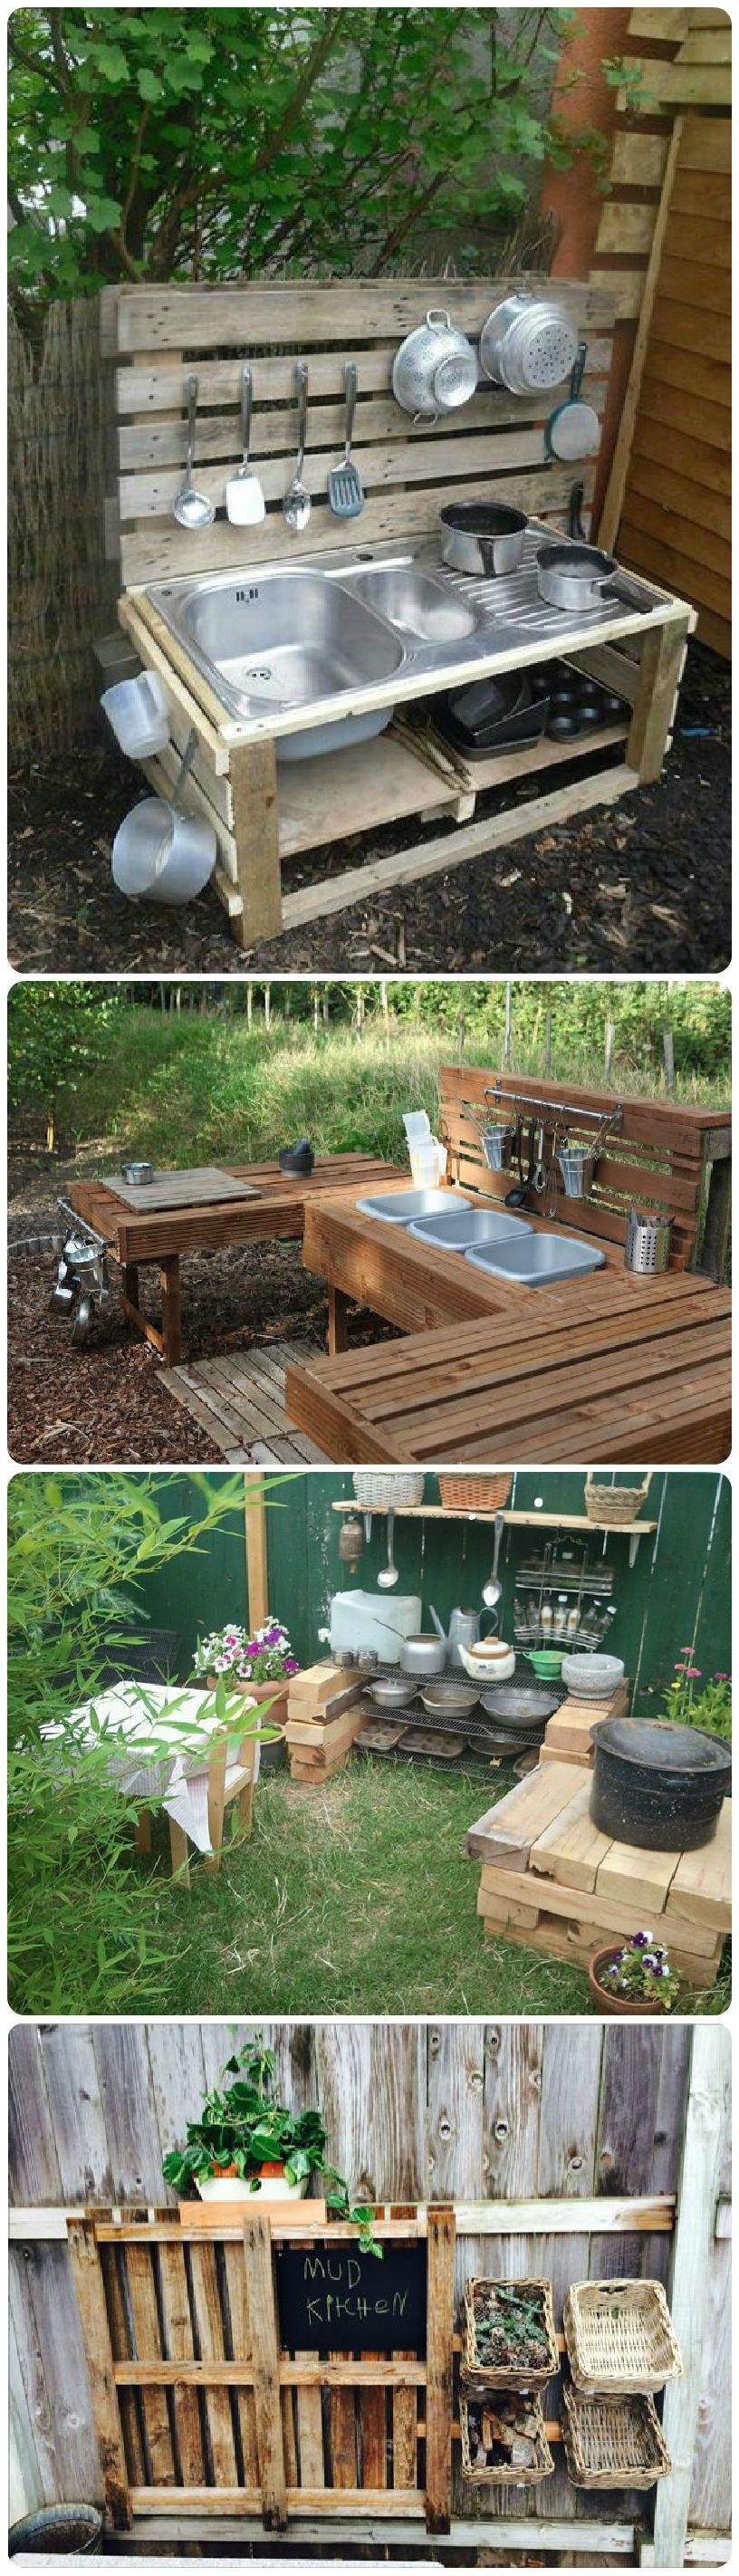 Garten Küche Kinder 20 Mud Kitchen Ideas For Kids Garden Ideas Gartengestaltung